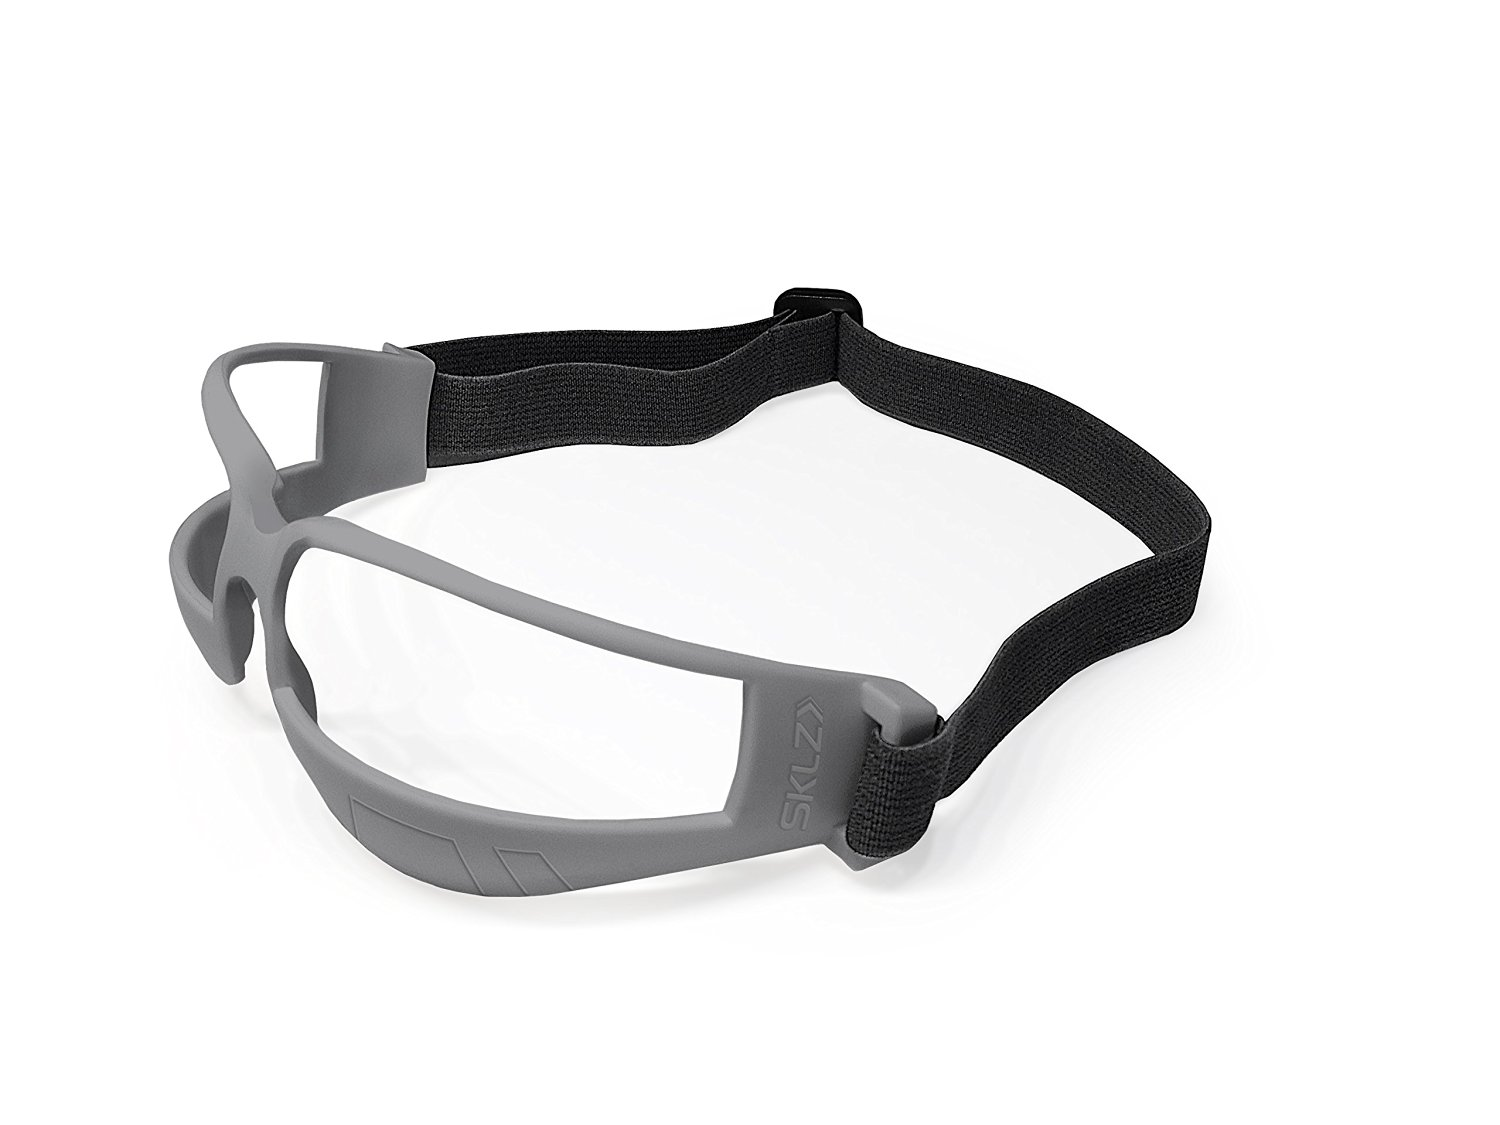 court vision dribbling goggles image